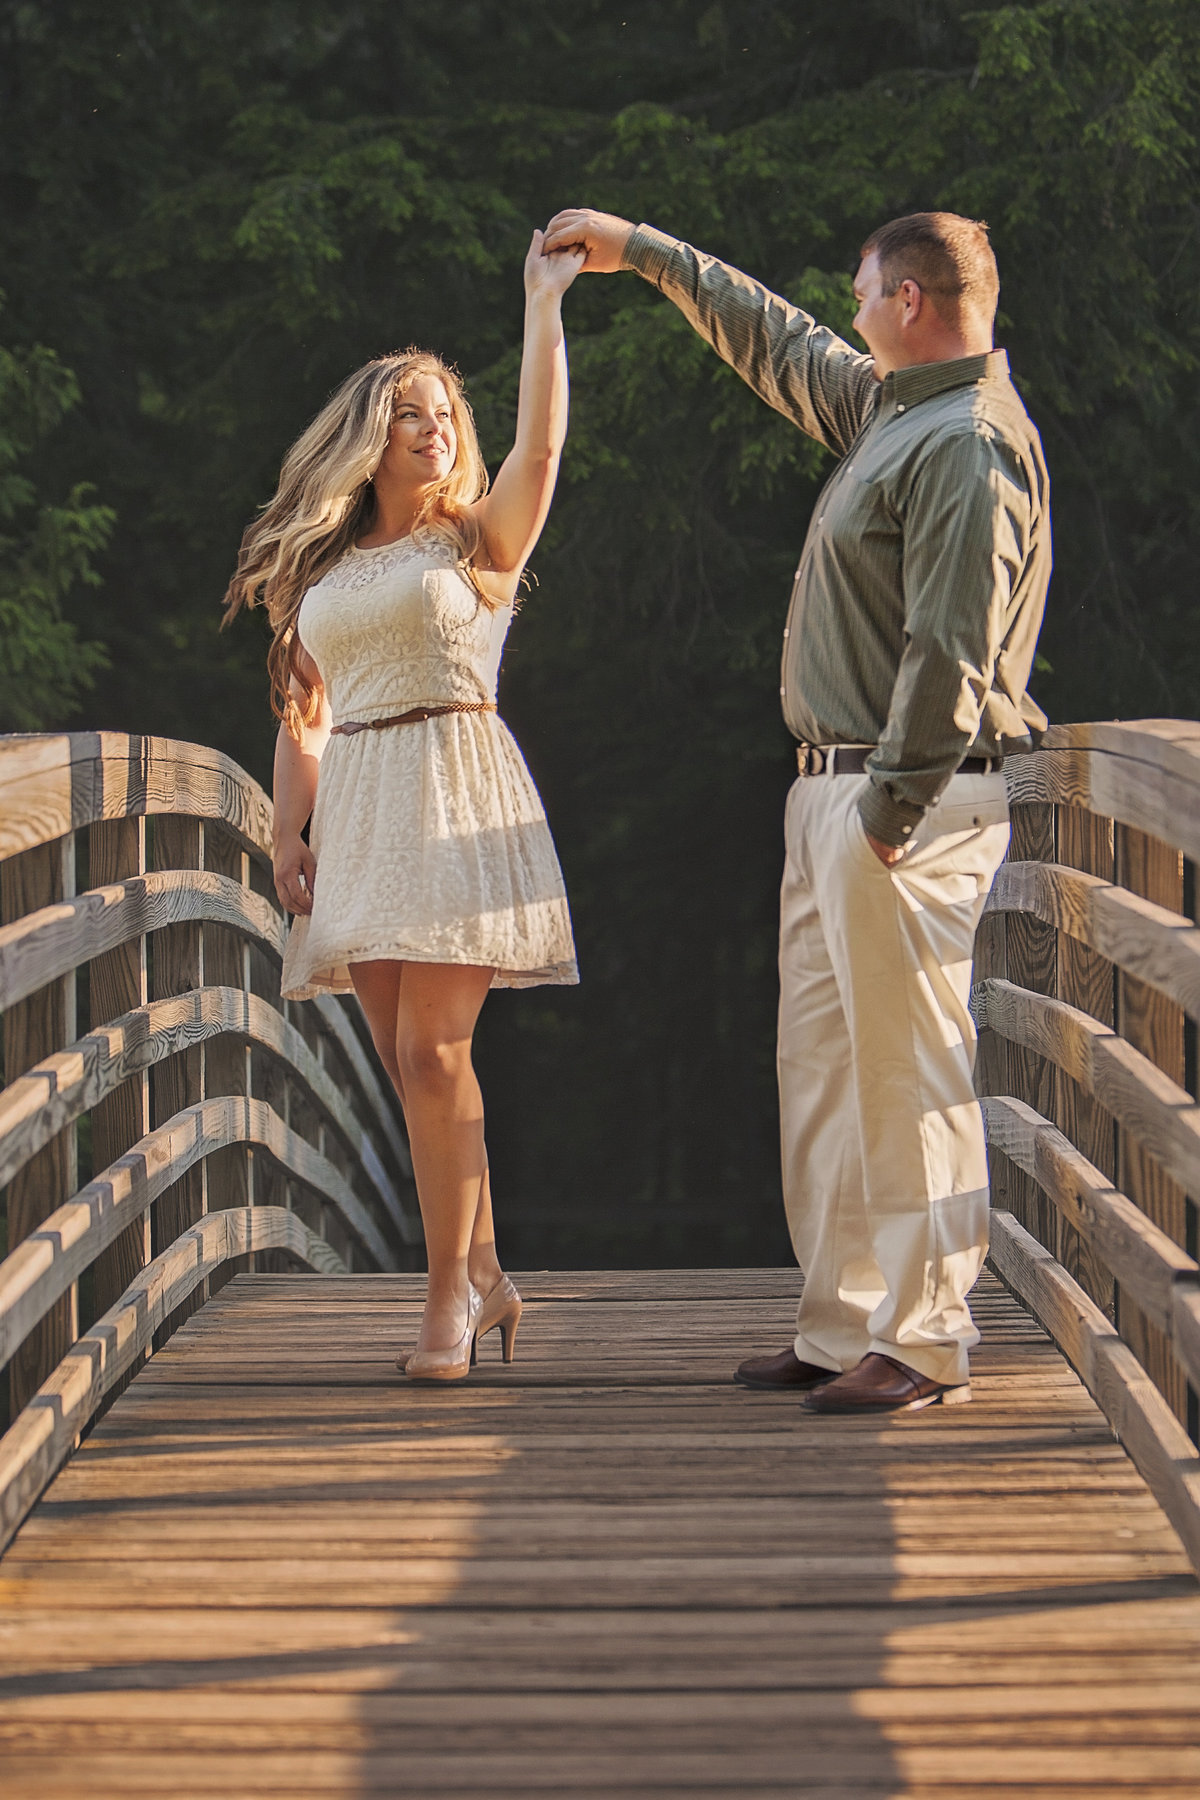 Chic Goodman Park campground engagement photos by Green Bay wedding photographer Casi Lea Photography